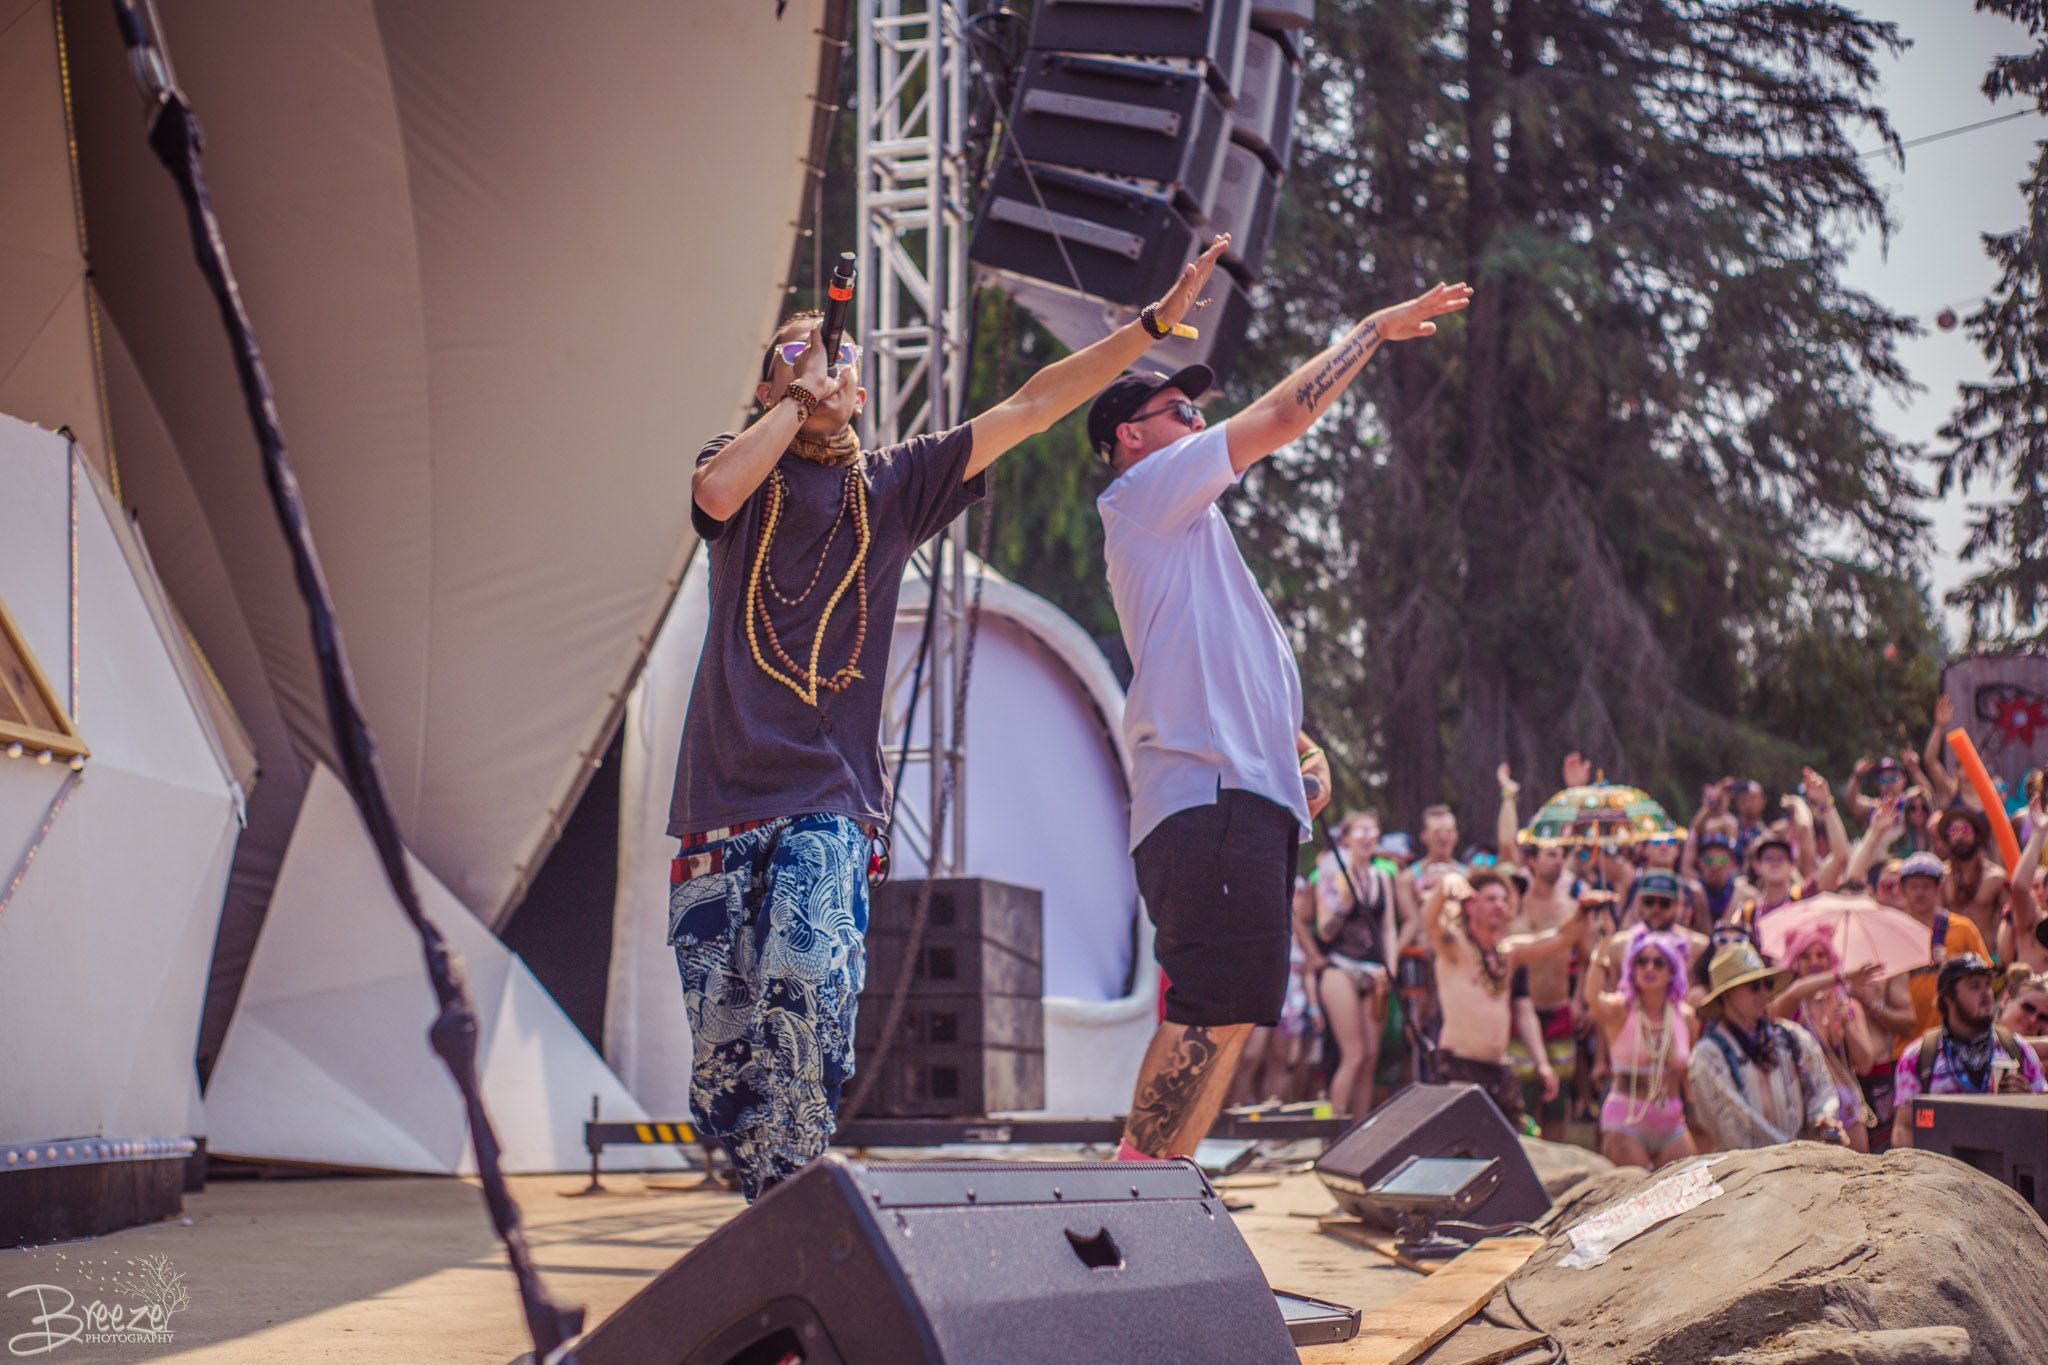 Brie'Ana Breeze Photography & Media - Shambhala 2018-9815.jpg